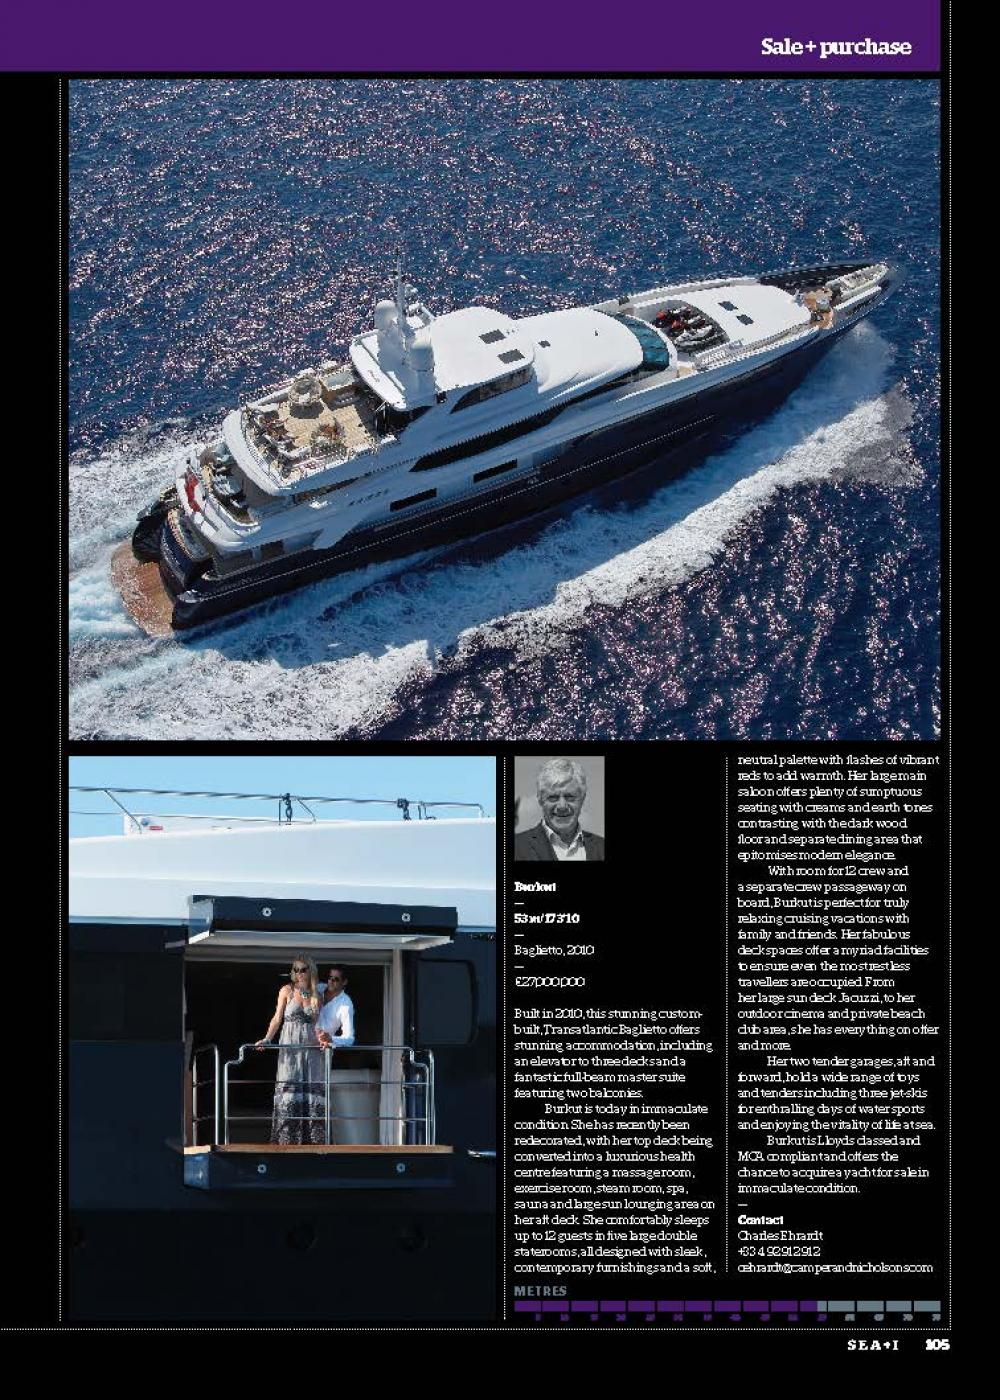 ISSUE 26 - SEA+I - Page 107 | C&N